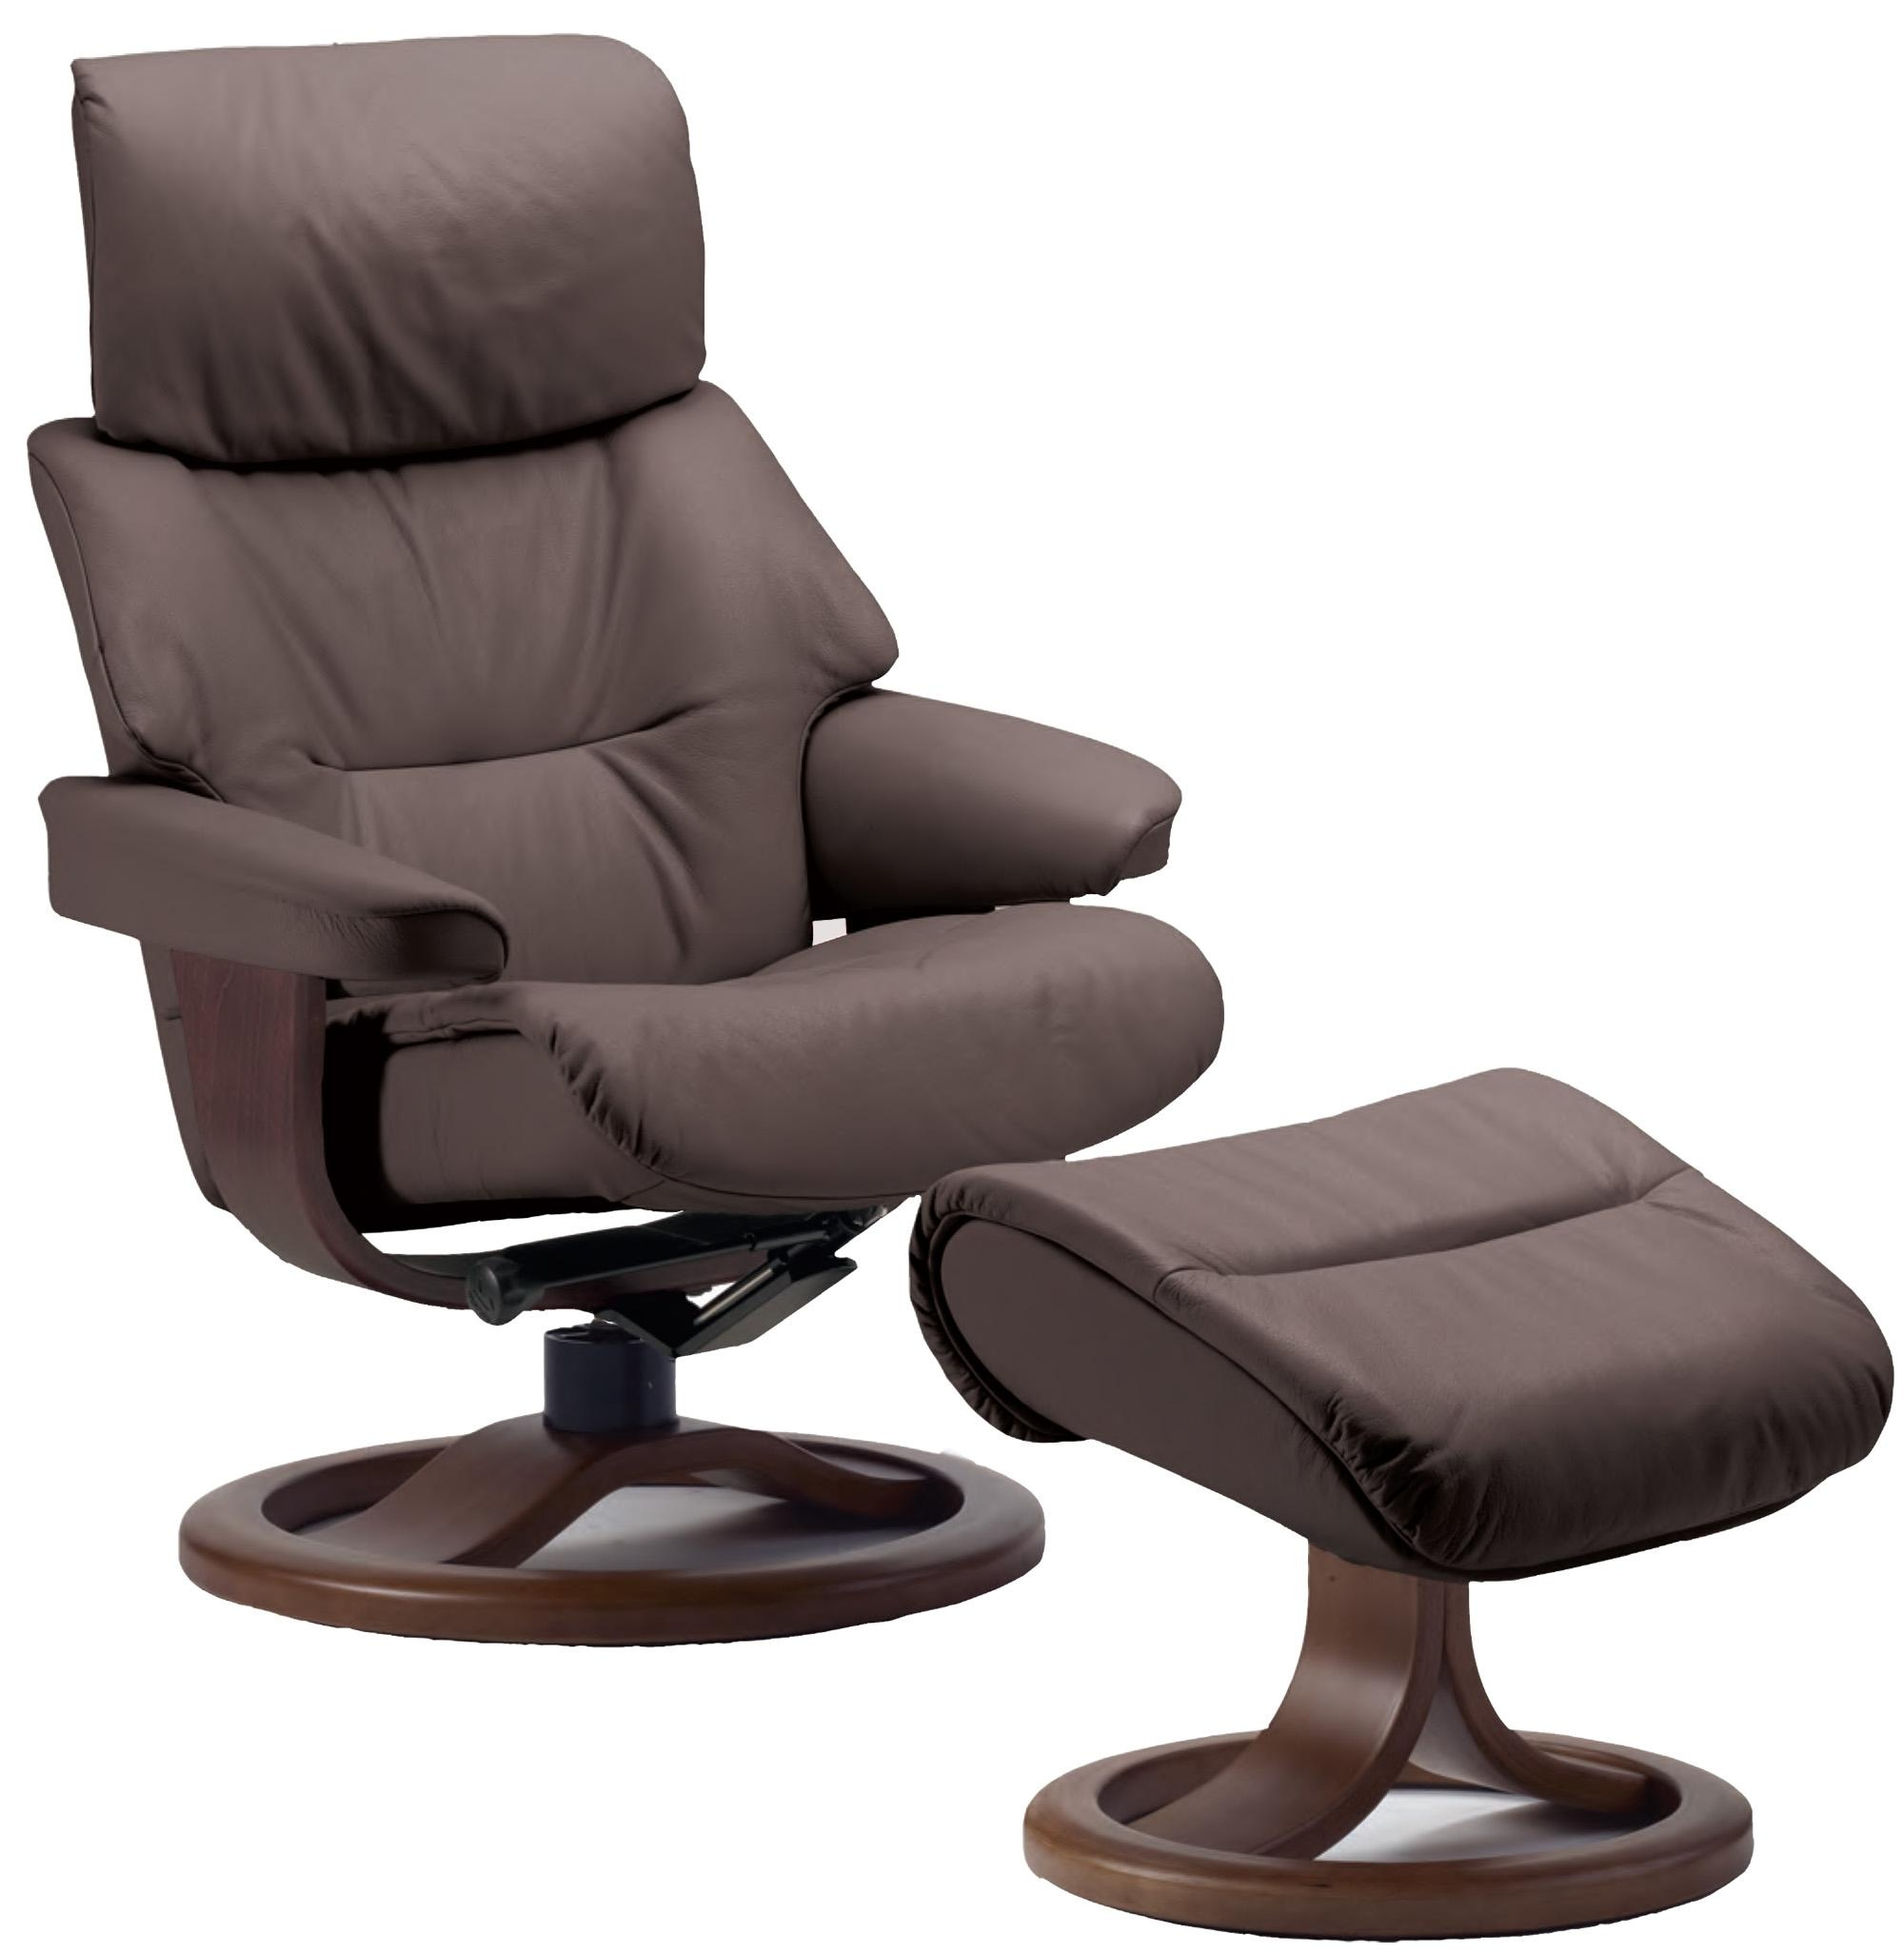 Fjords Grip Ergonomic Leather Recliner Chair + Ottoman Regarding Ergonomic Sofas And Chairs (View 3 of 20)